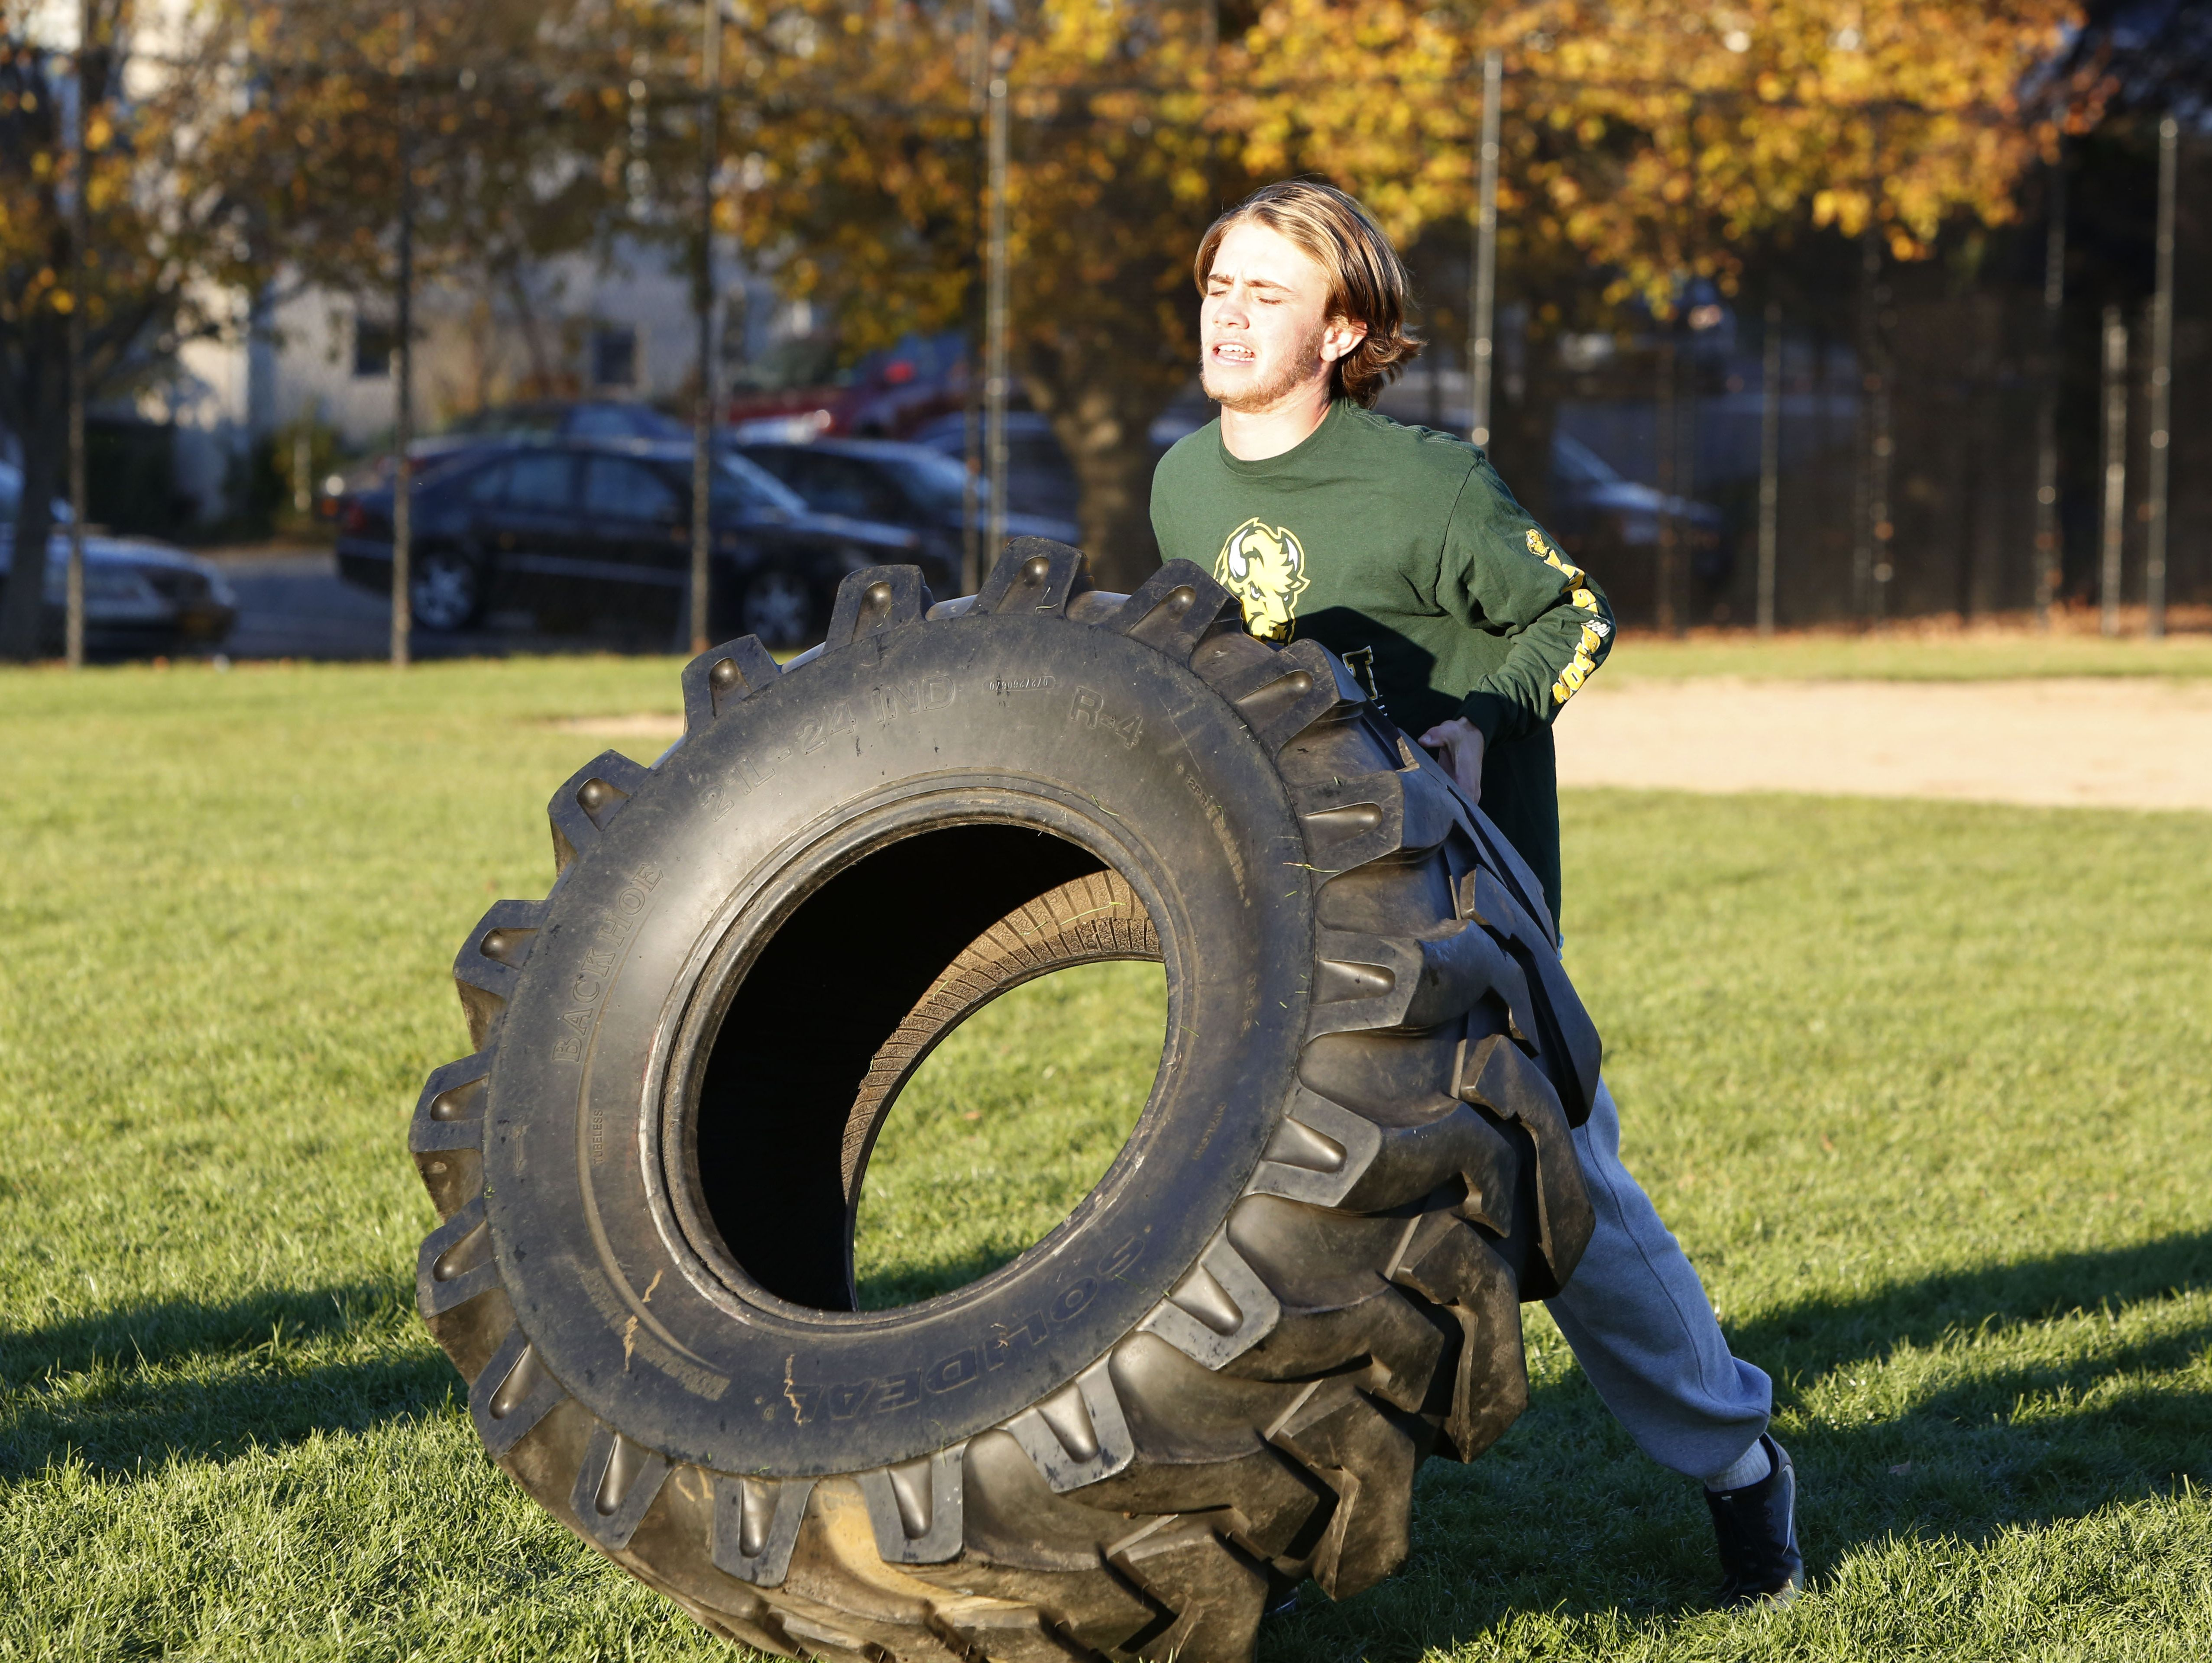 Junior Declan McDermott at football practice Nov. 7, 2016 in Pleasantville. McDermott scored two touchdowns in the Class B championship. The lacrosse star grew up playing football, but didn't join the varsity until this year. He spent the last couple years running cross country because he wanted to be on the team with his older brother.